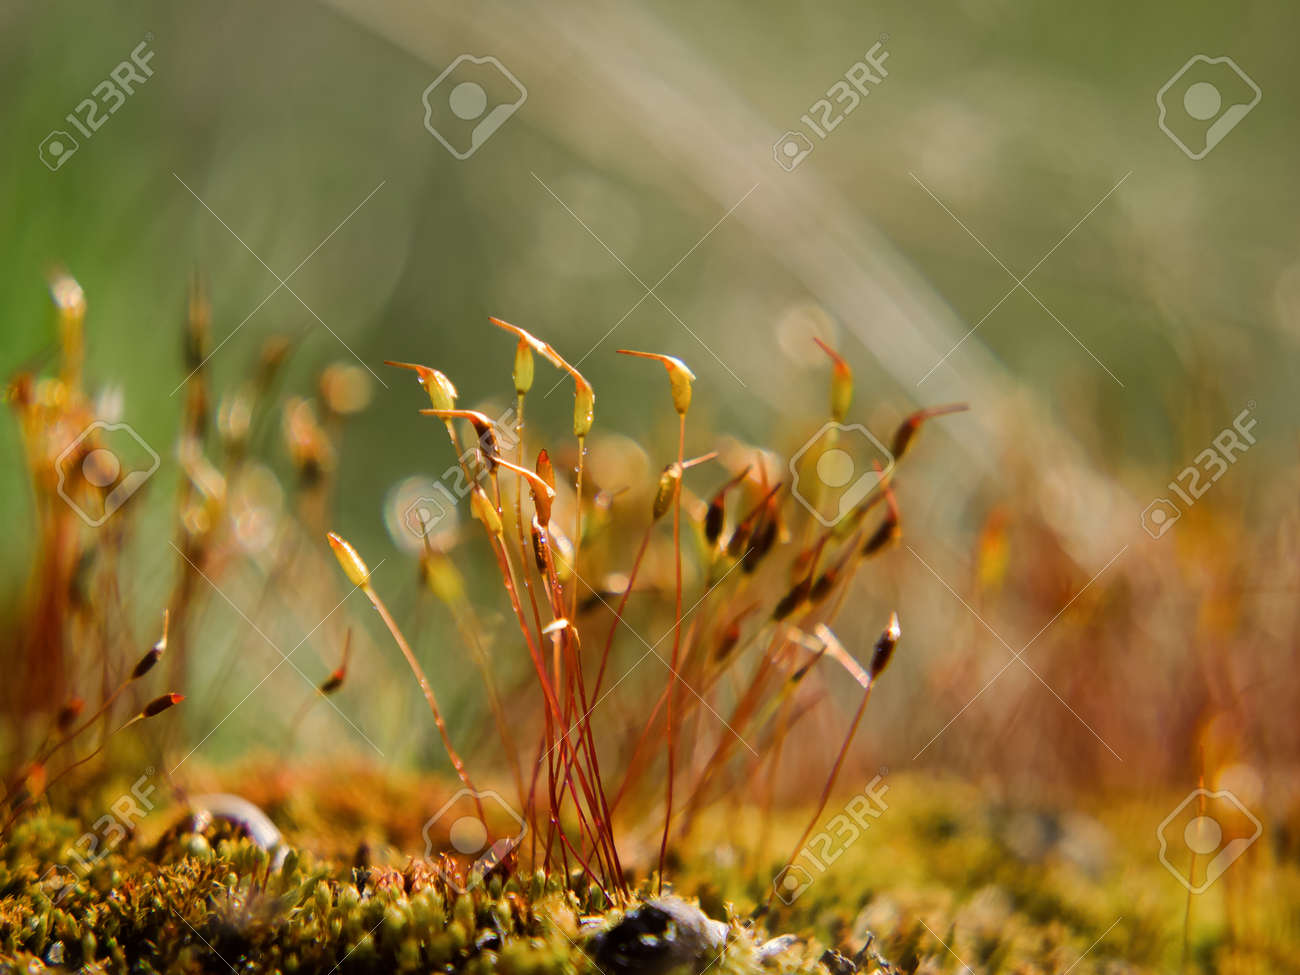 BLOOMING MOSS - A forest glade in the rays of the sun - 168070521